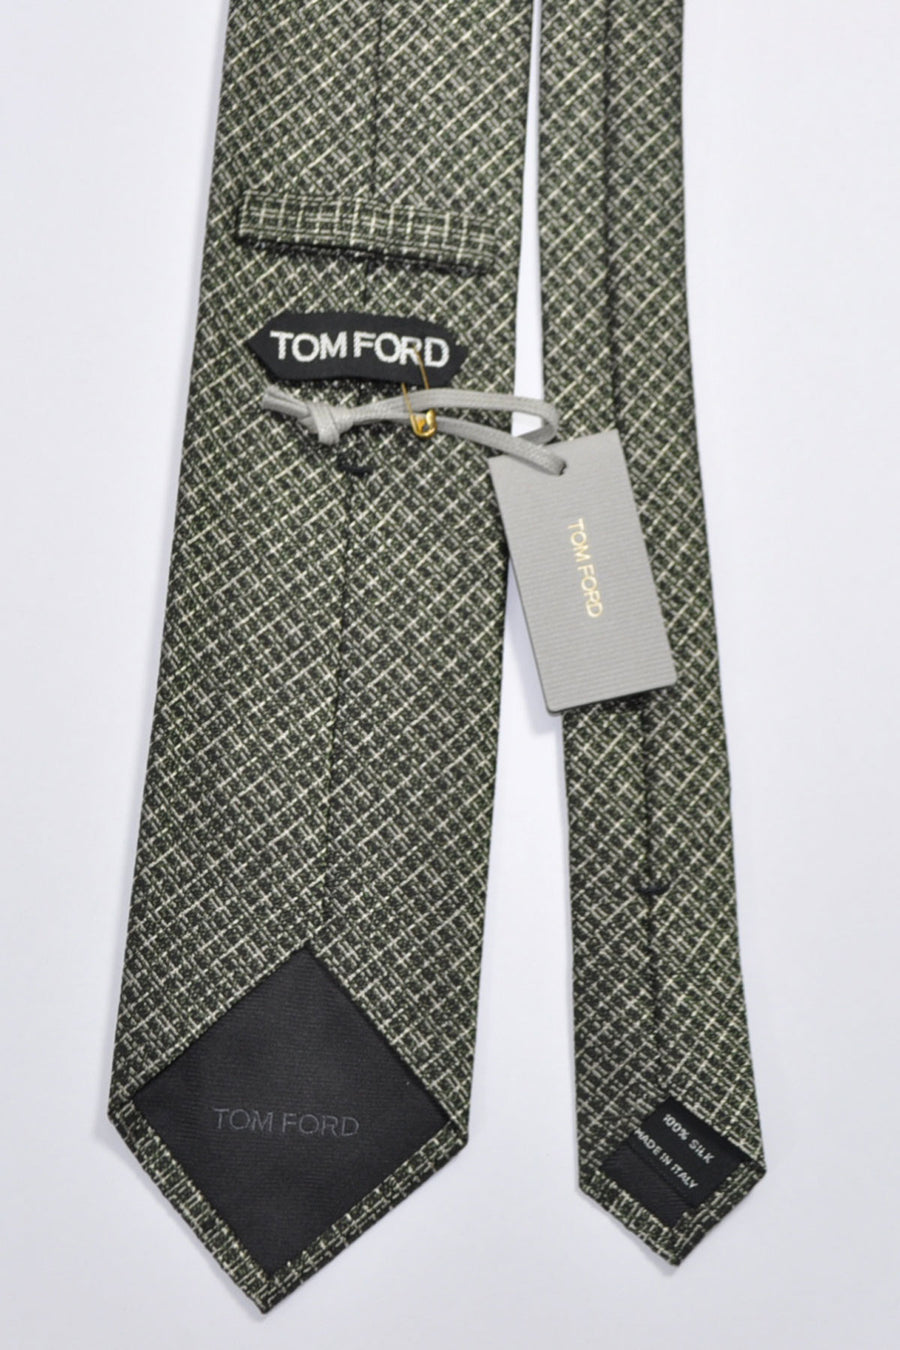 Tom Ford Tie Black Green Silver Silk Necktie SALE